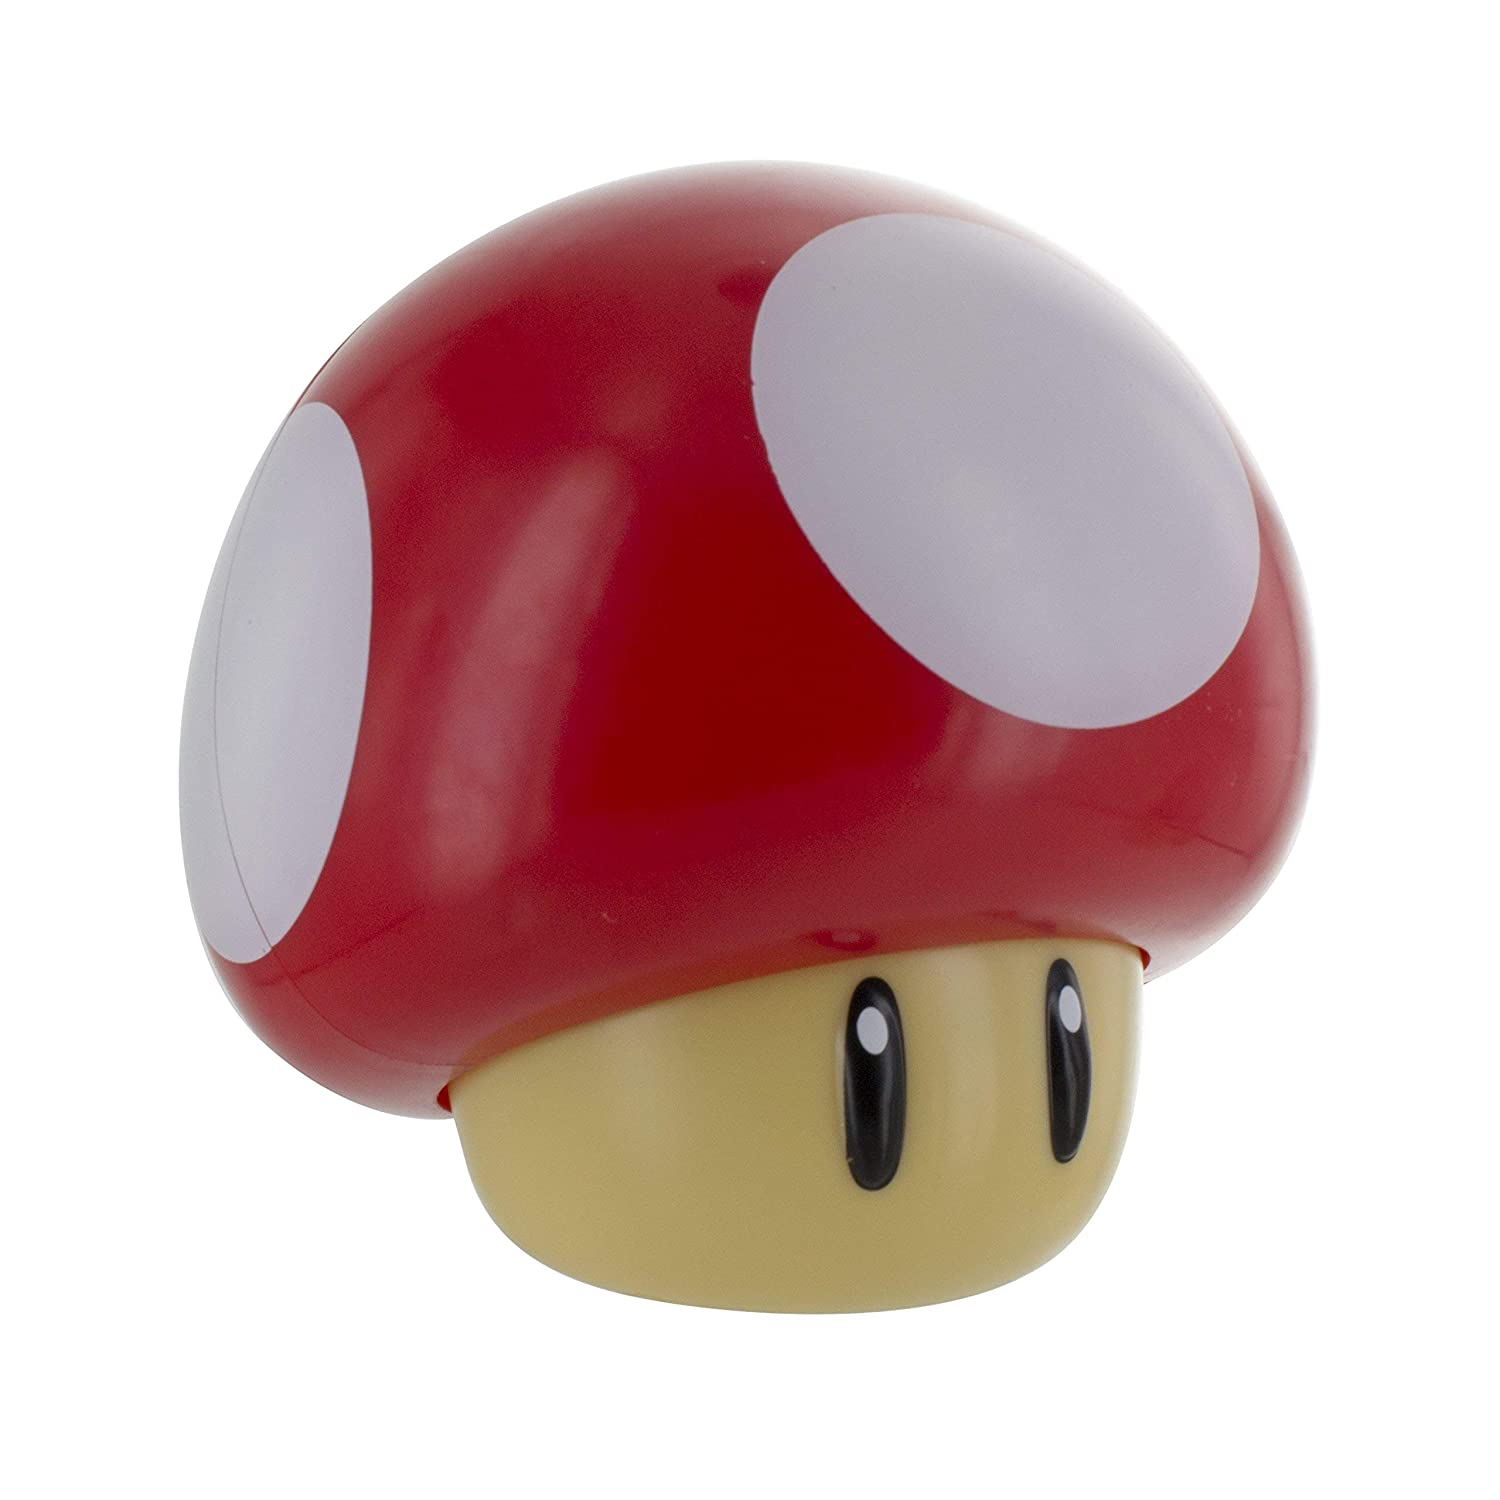 Super Mario Toad Mushroom Table Lamp - Night Light